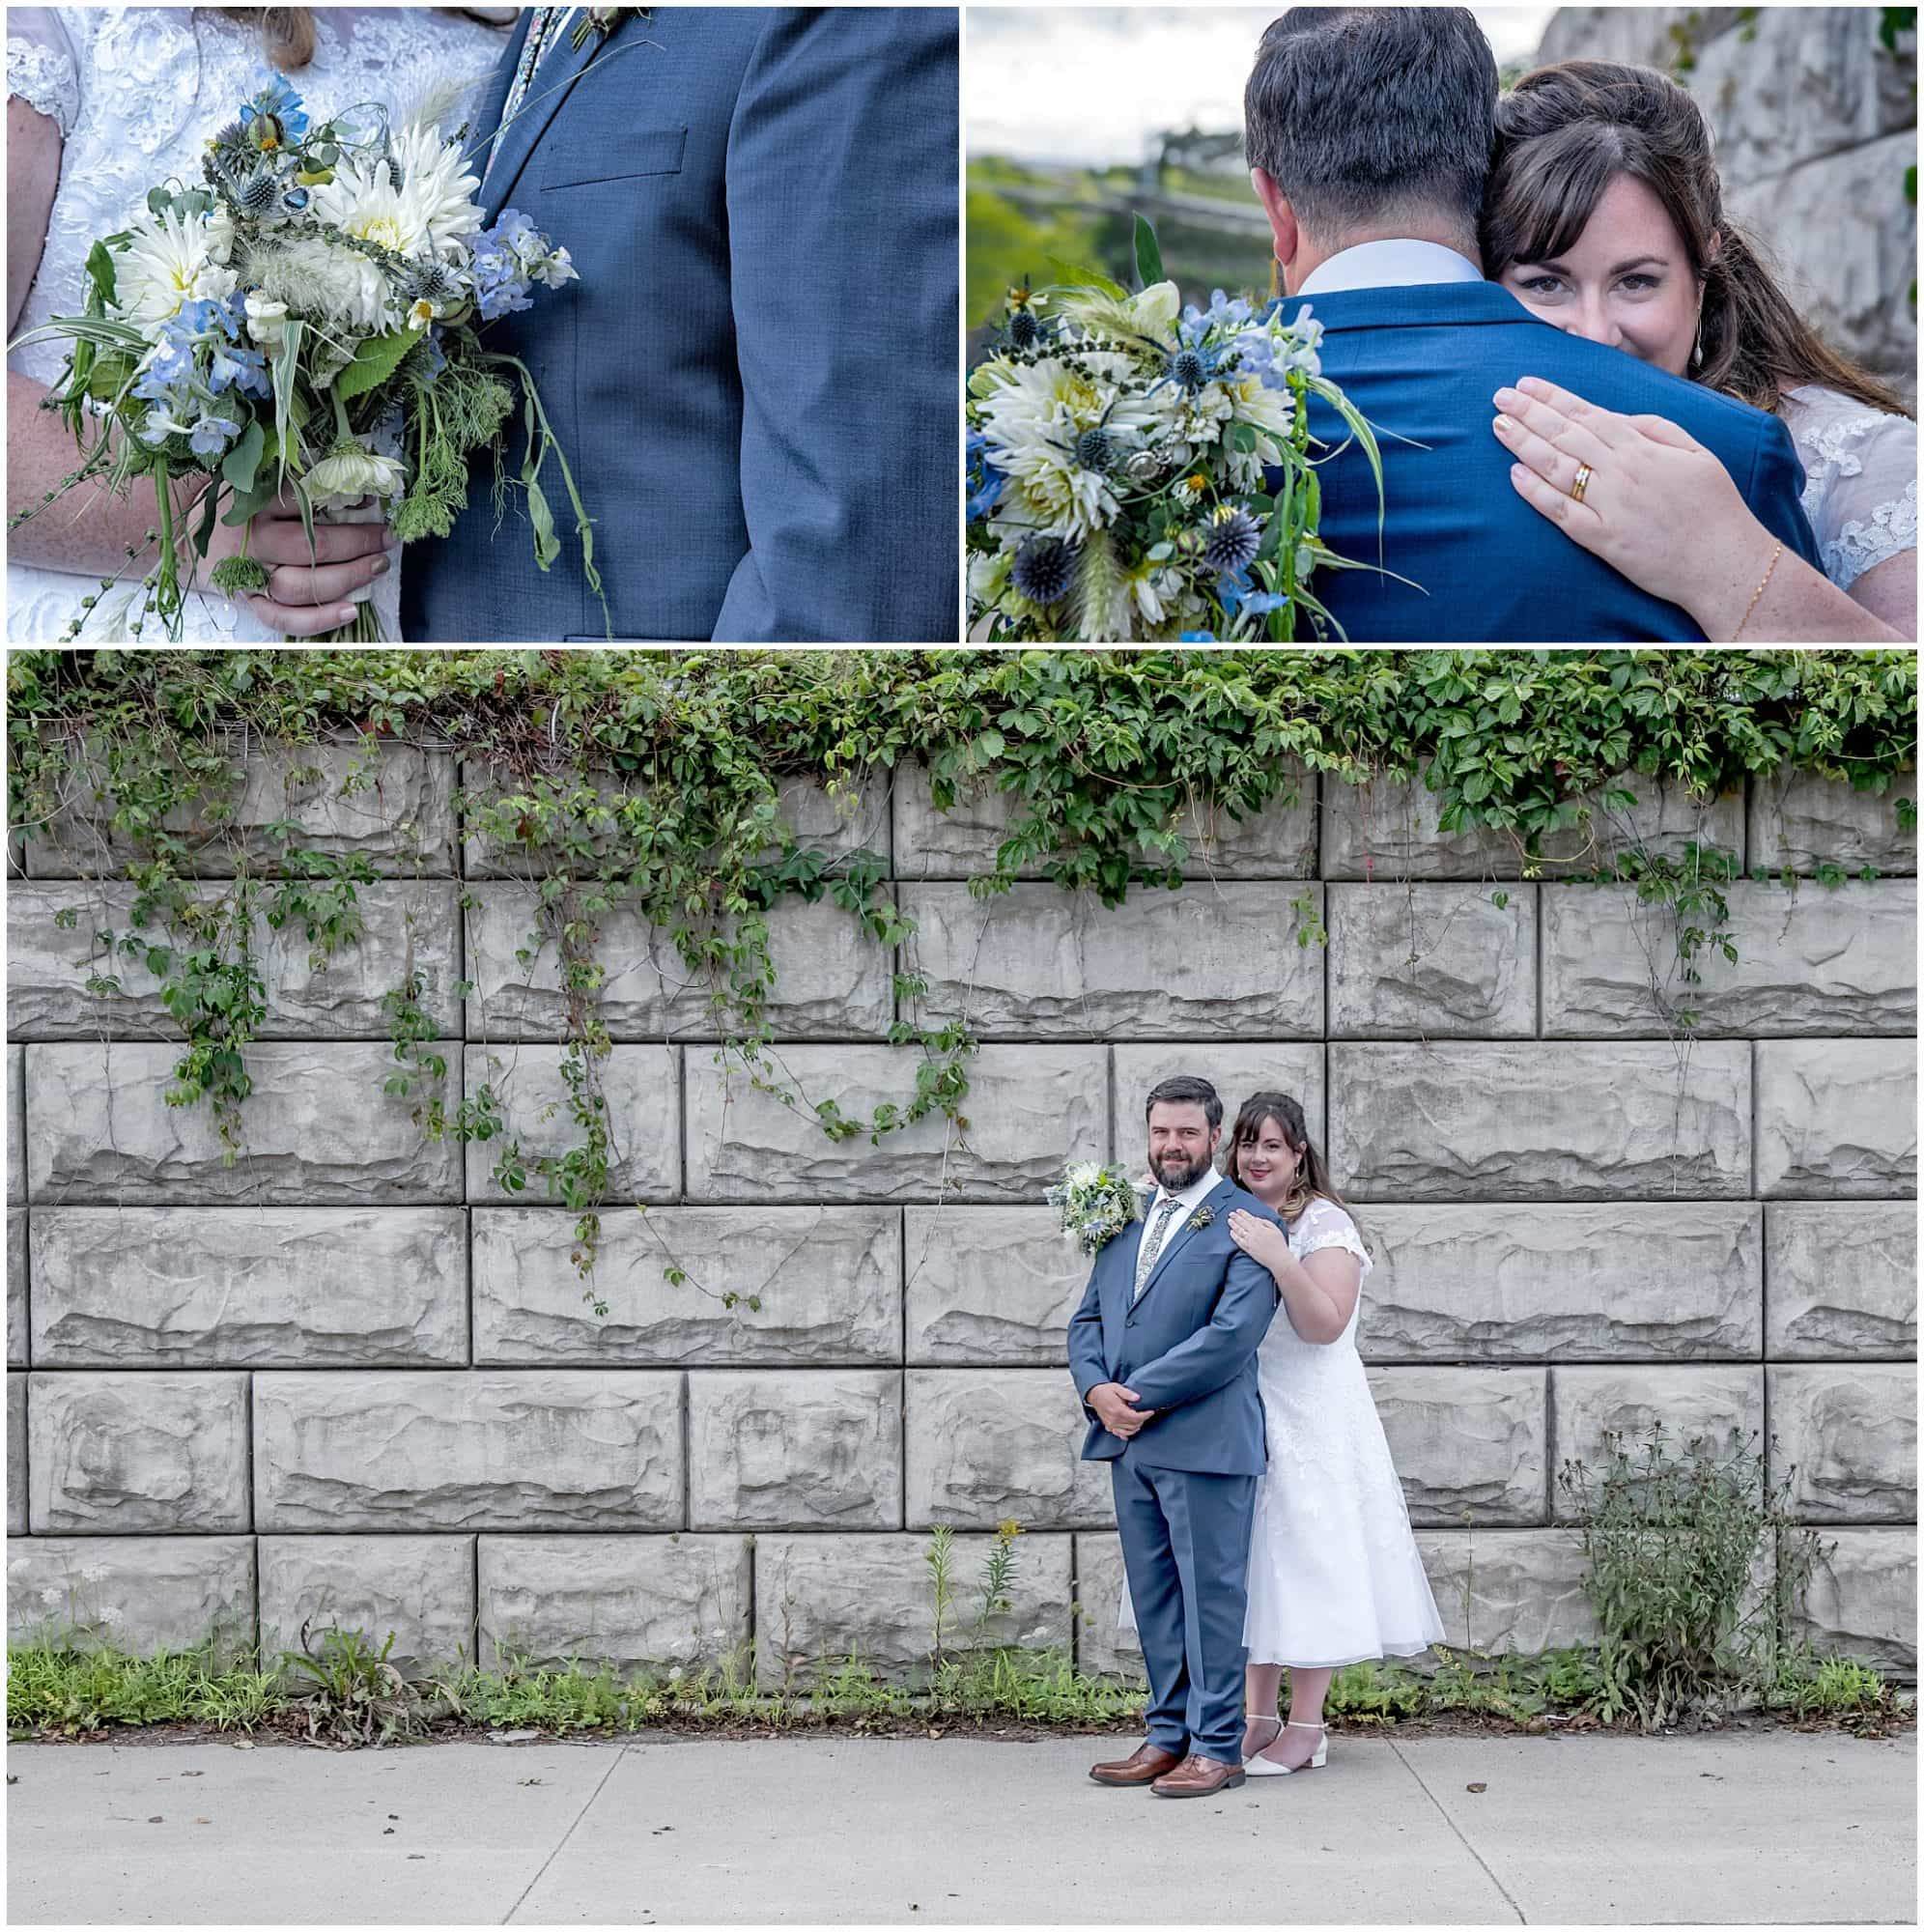 The bride and groom pose for wedding photos infront of a stone wall with hanging green leafy veins by the Best Western Chocolate Lake Hotel in Halifax NS.